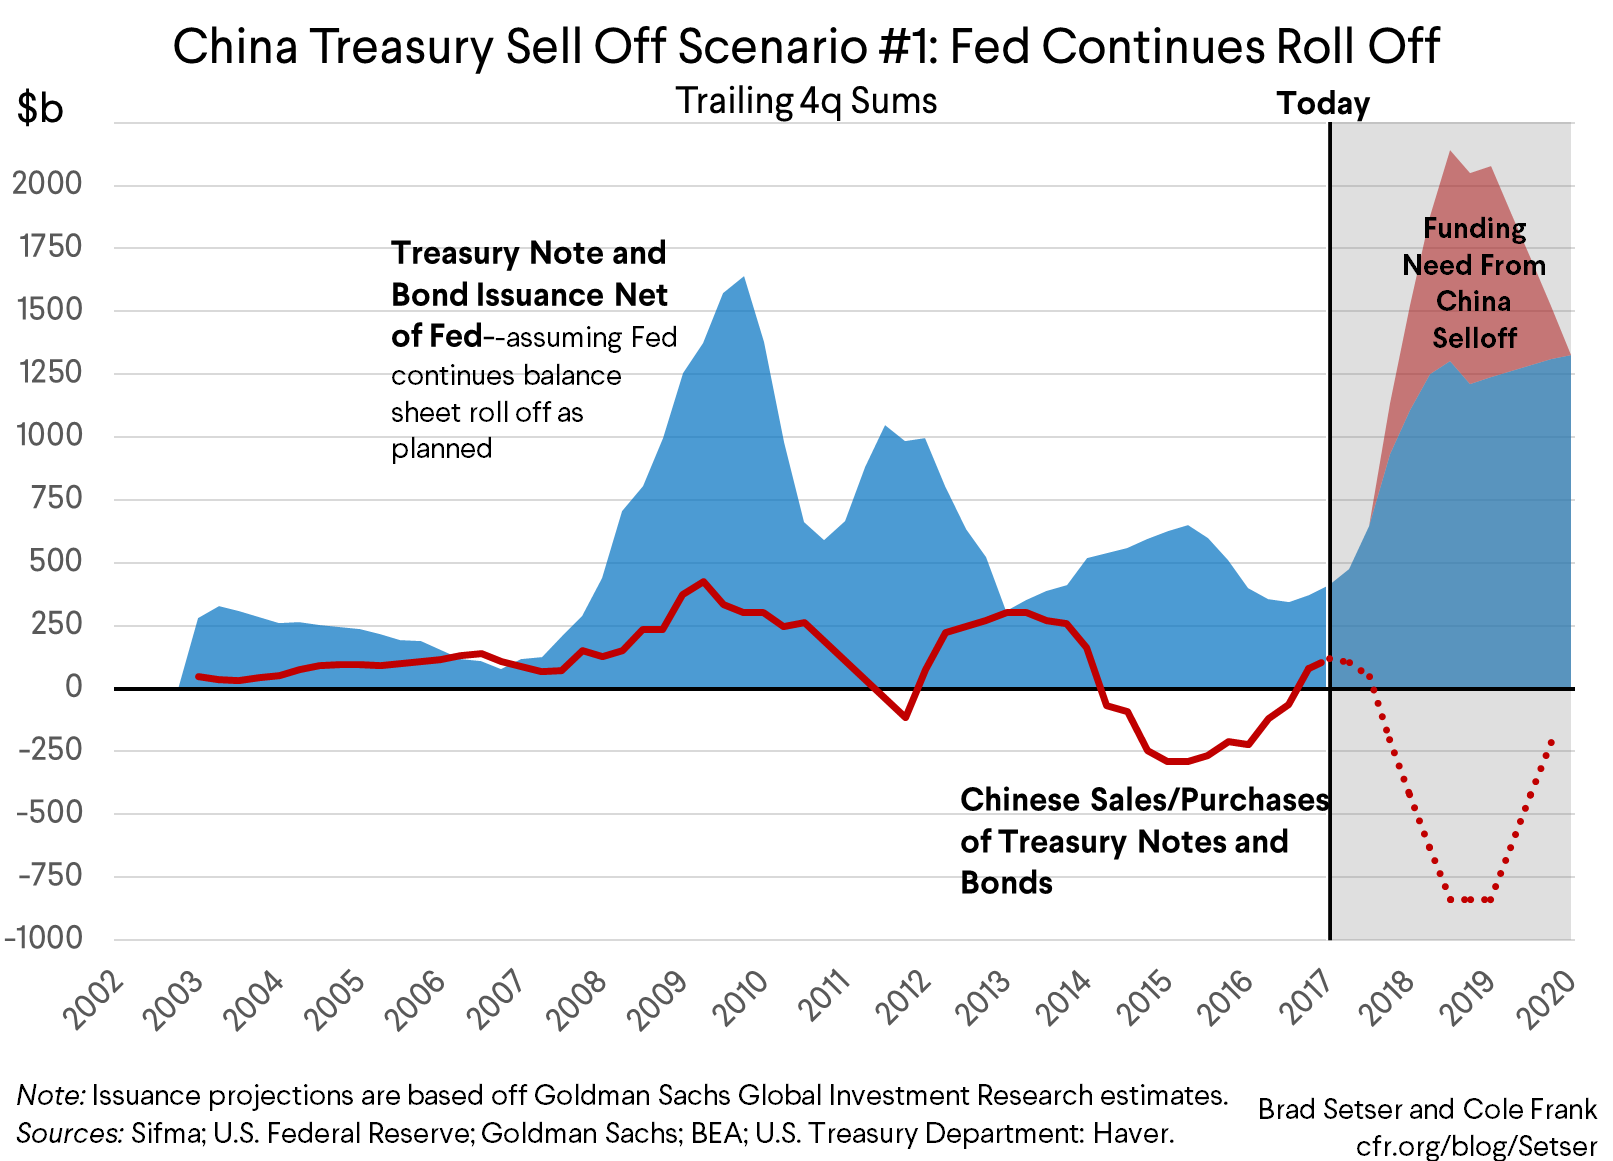 What Would Happen if China Started Selling Off Its Treasury Portfolio?